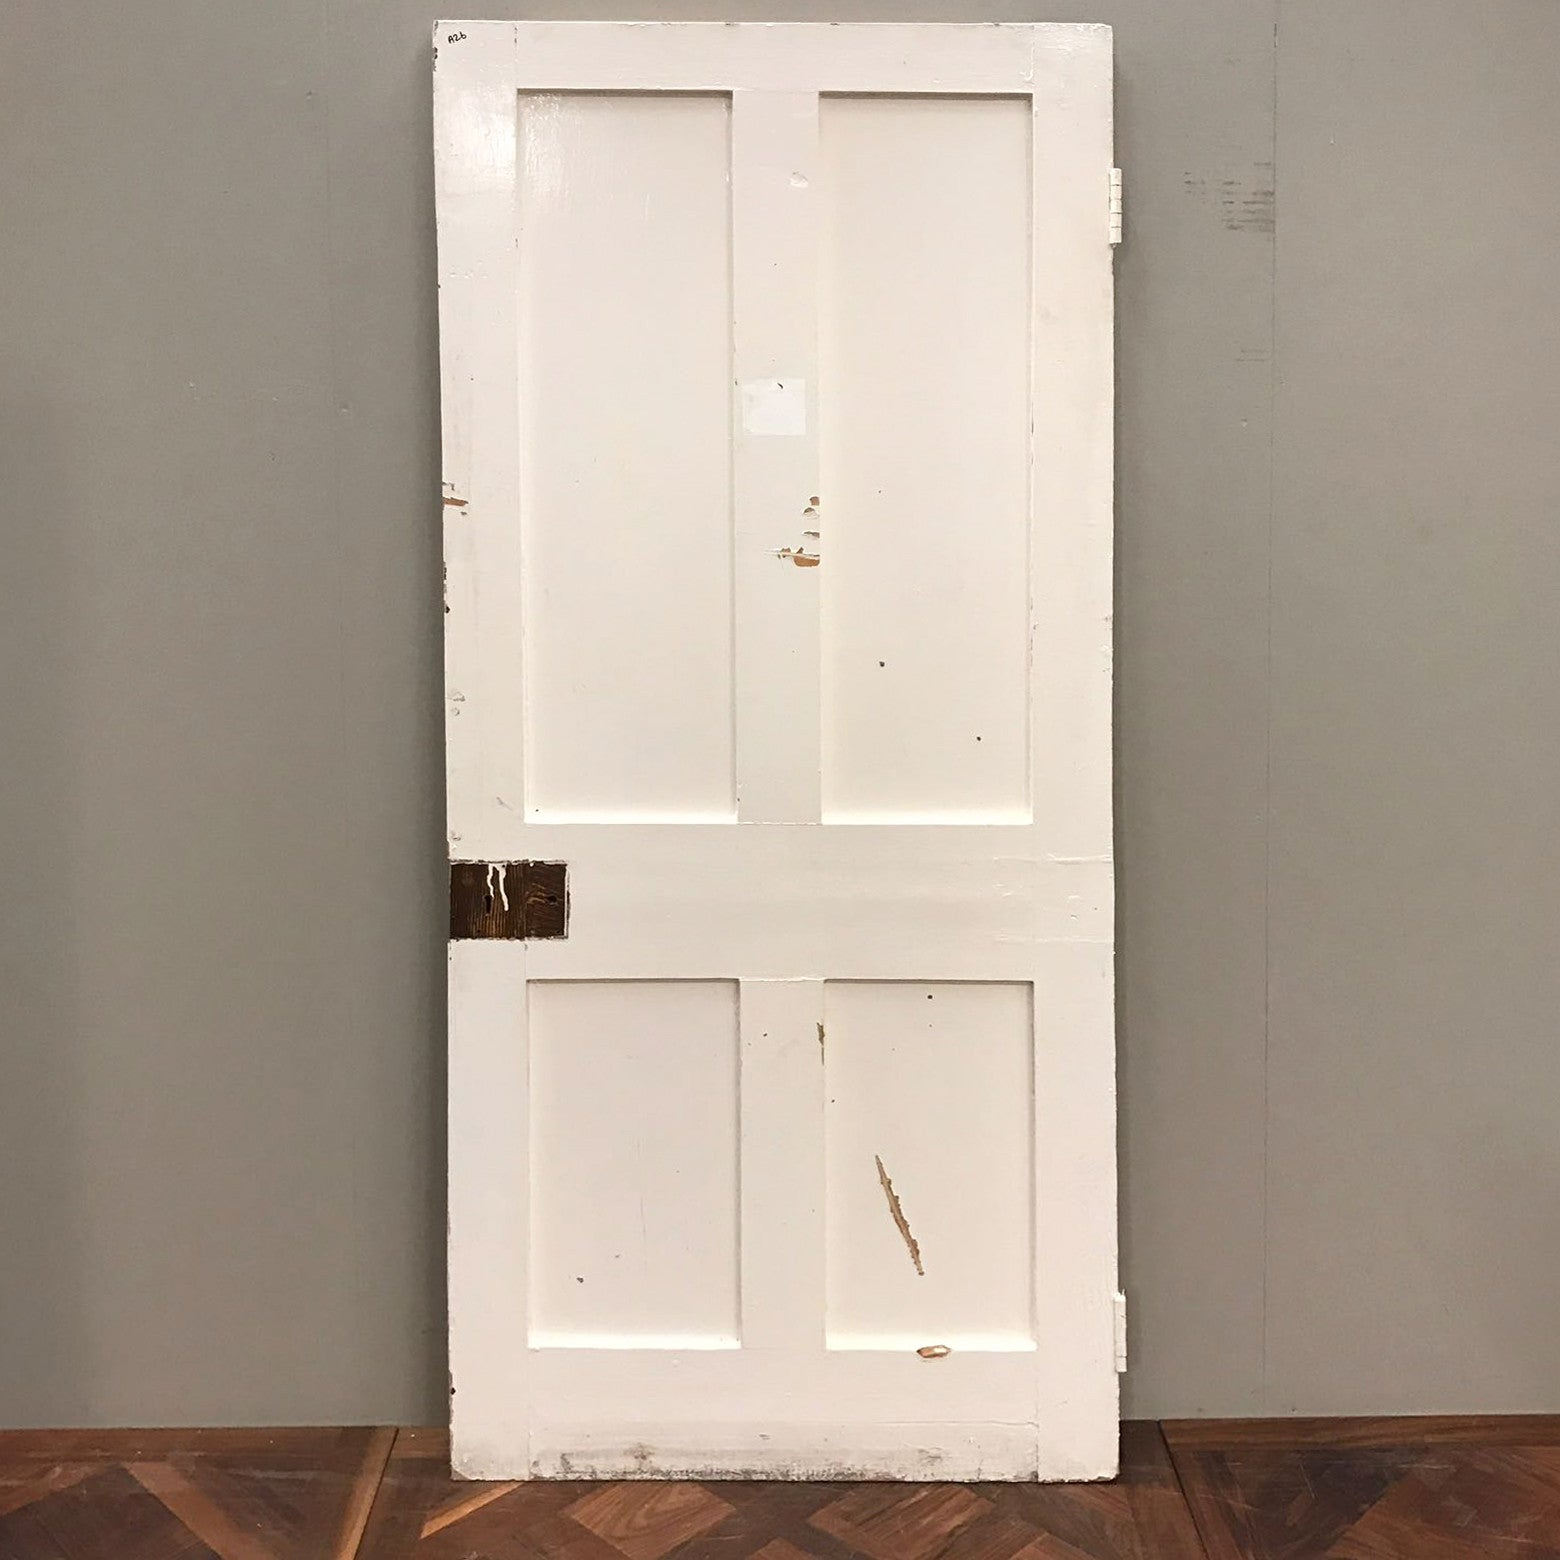 Reclaimed Victorian Four Panel Door - 203cm x 85cm x 5cm - architectural-forum